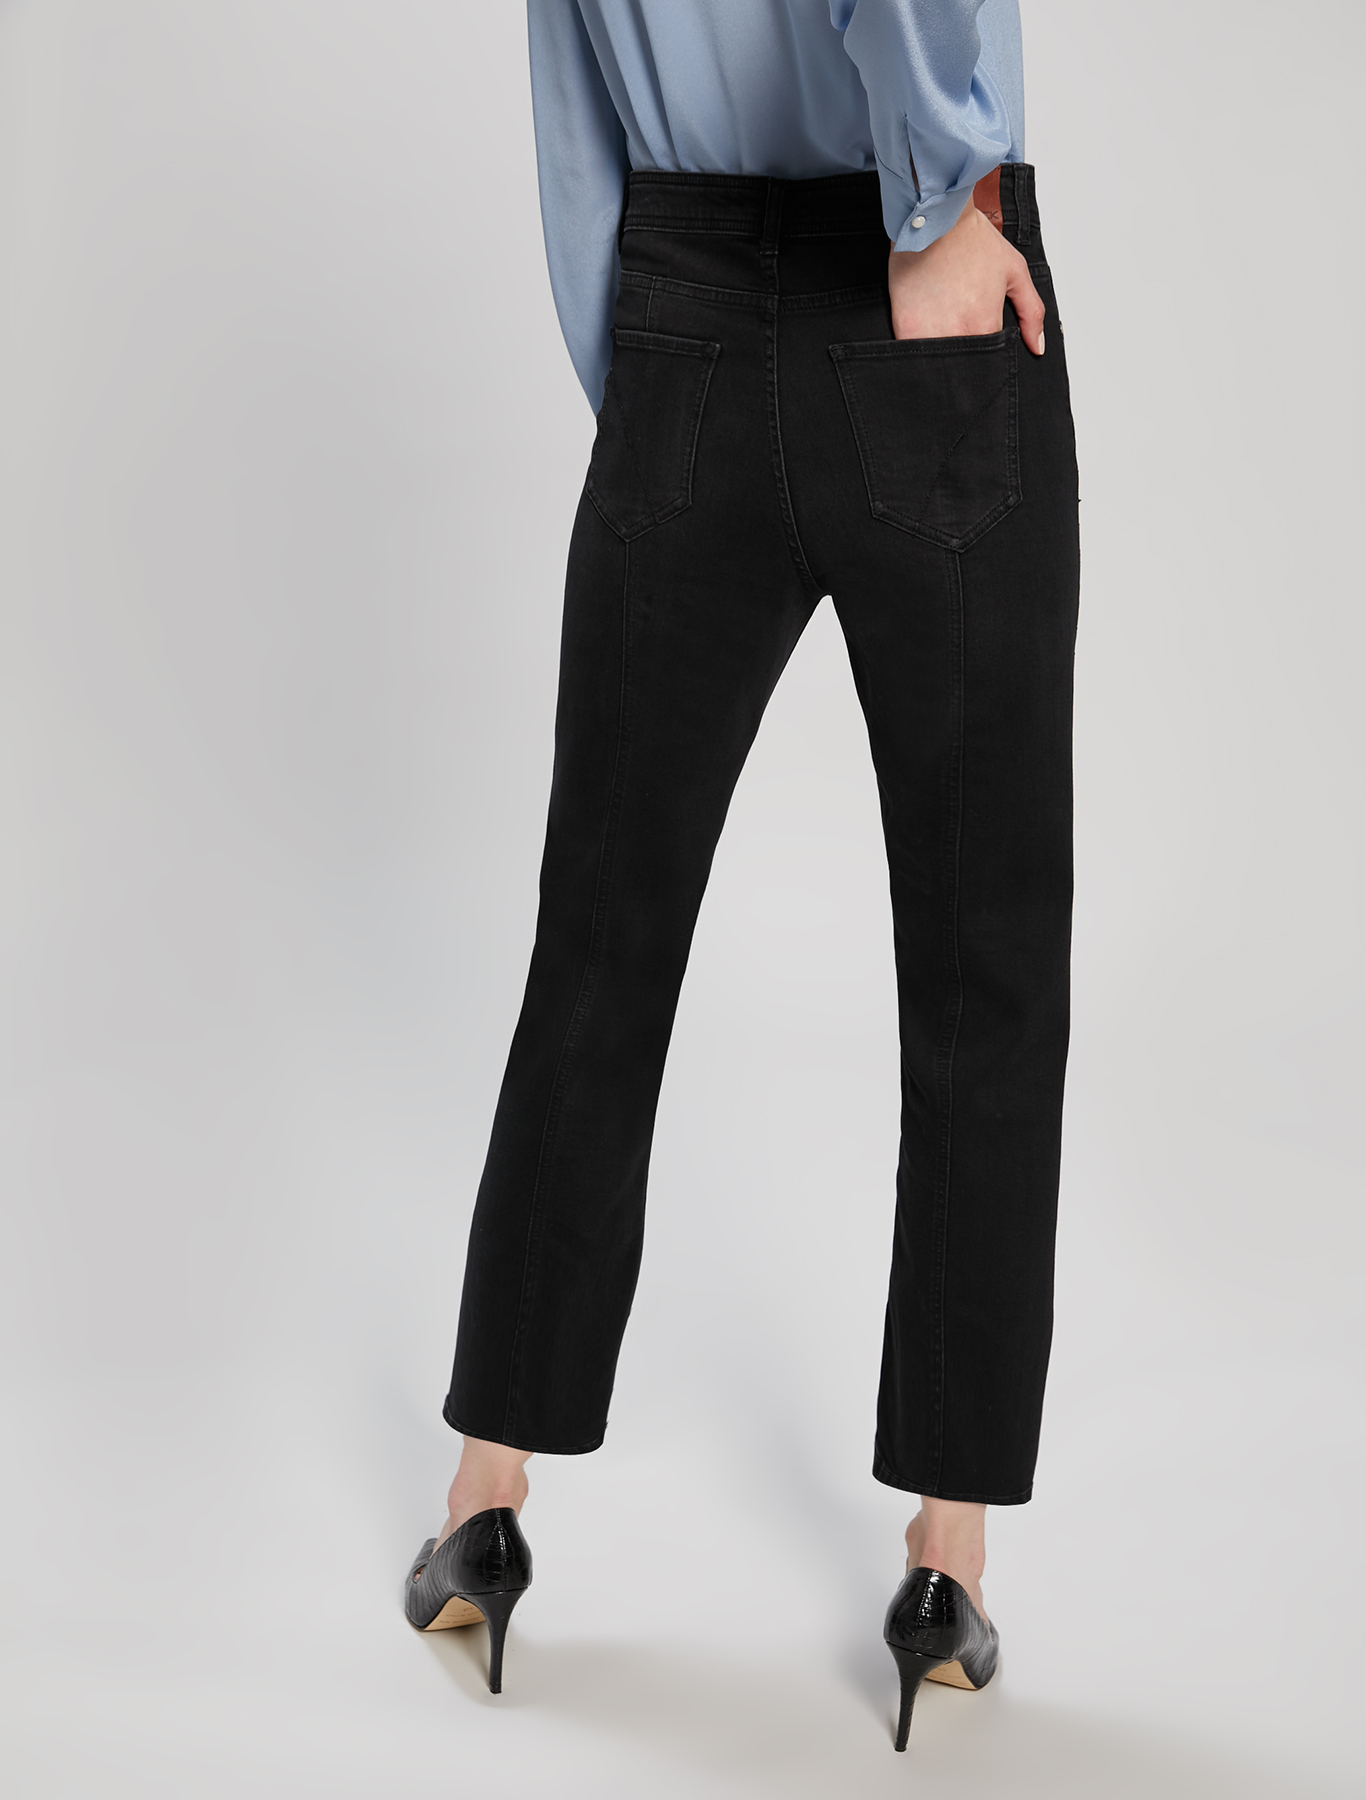 Micro-studded jeans - black - pennyblack